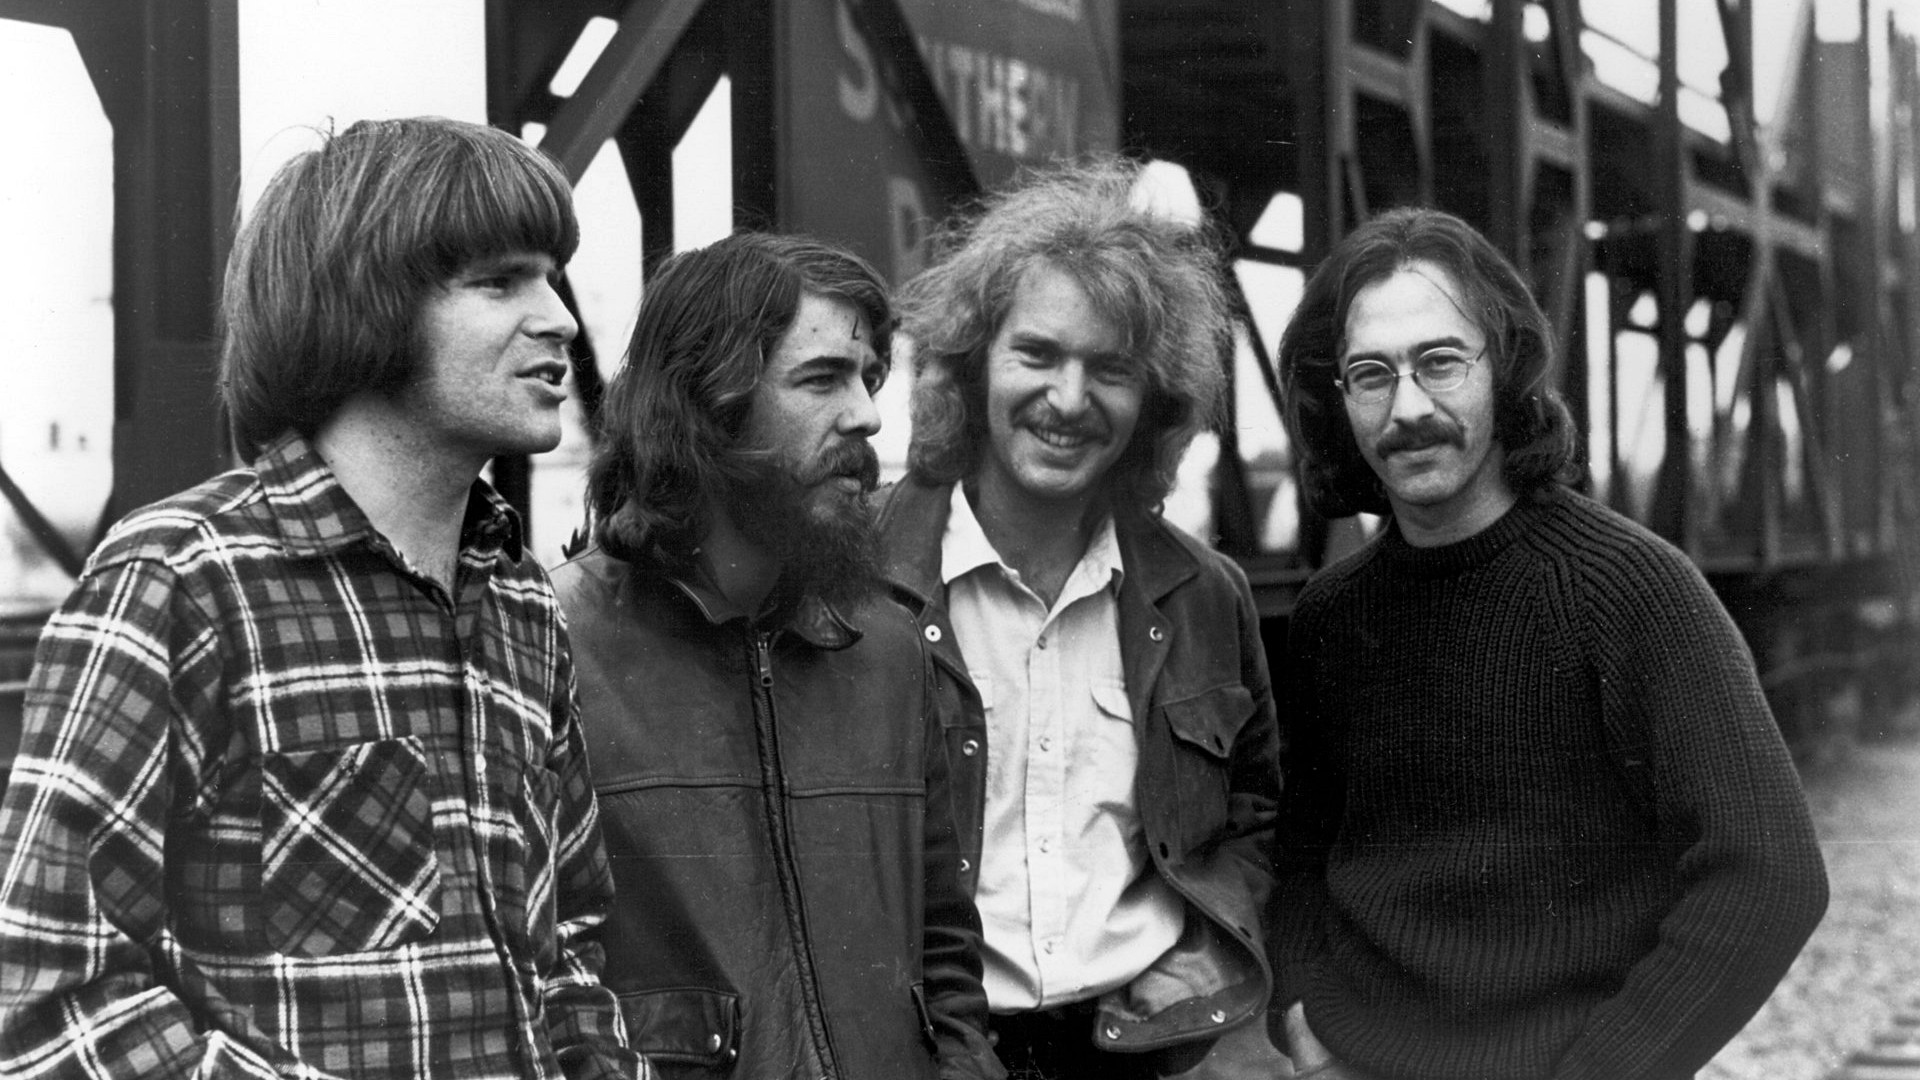 Down On The Corner av Creedence Clearwater Revival